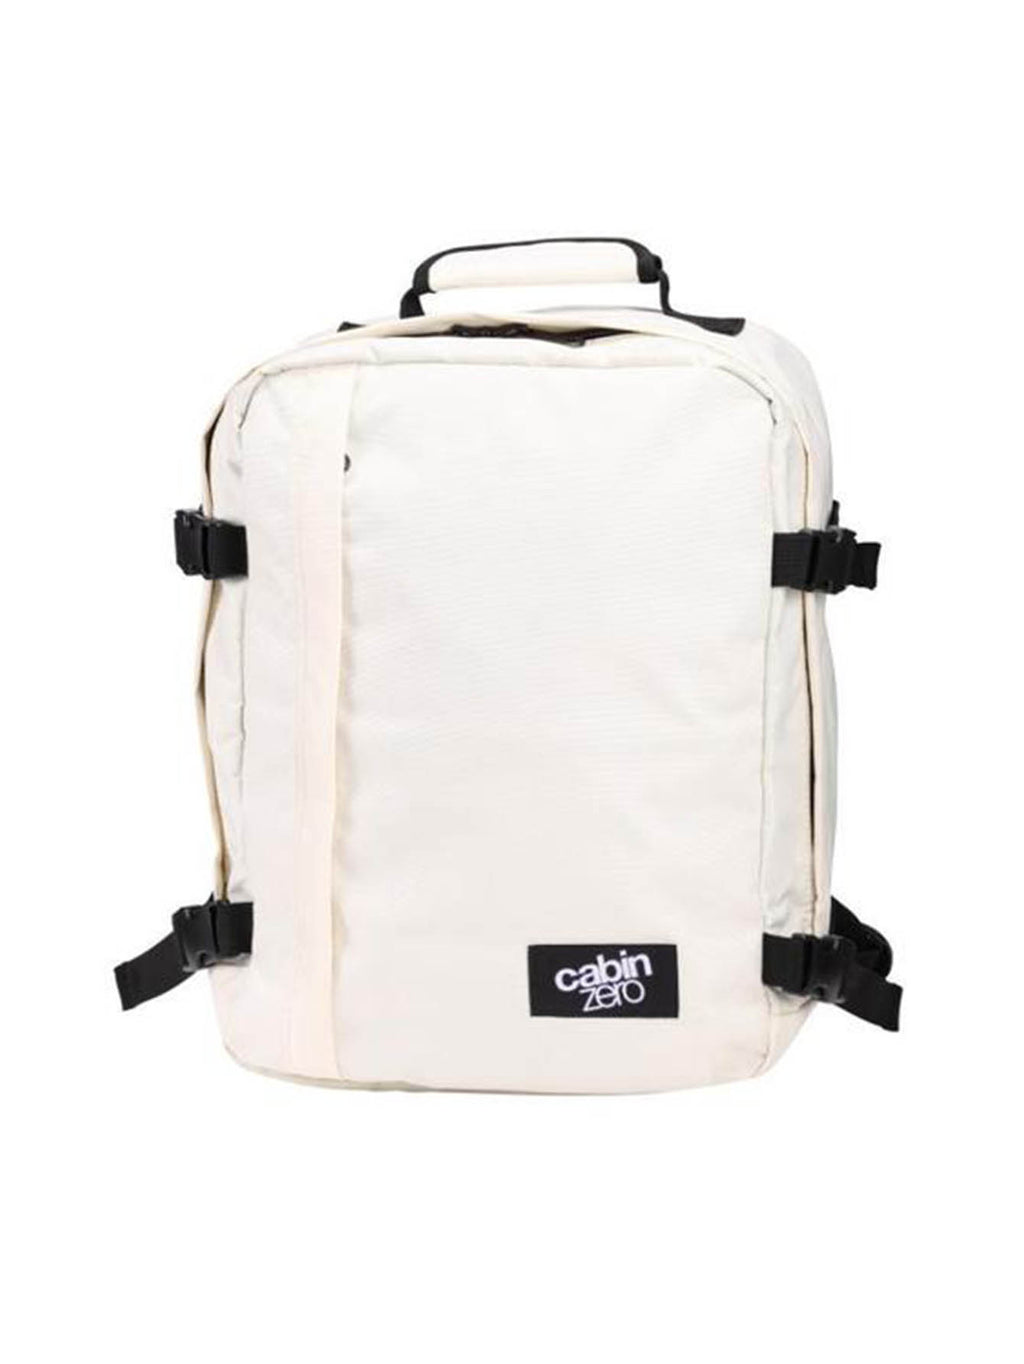 Cabinzero Classic 28L Ultra-Light Cabin Bag in Cabin White Color